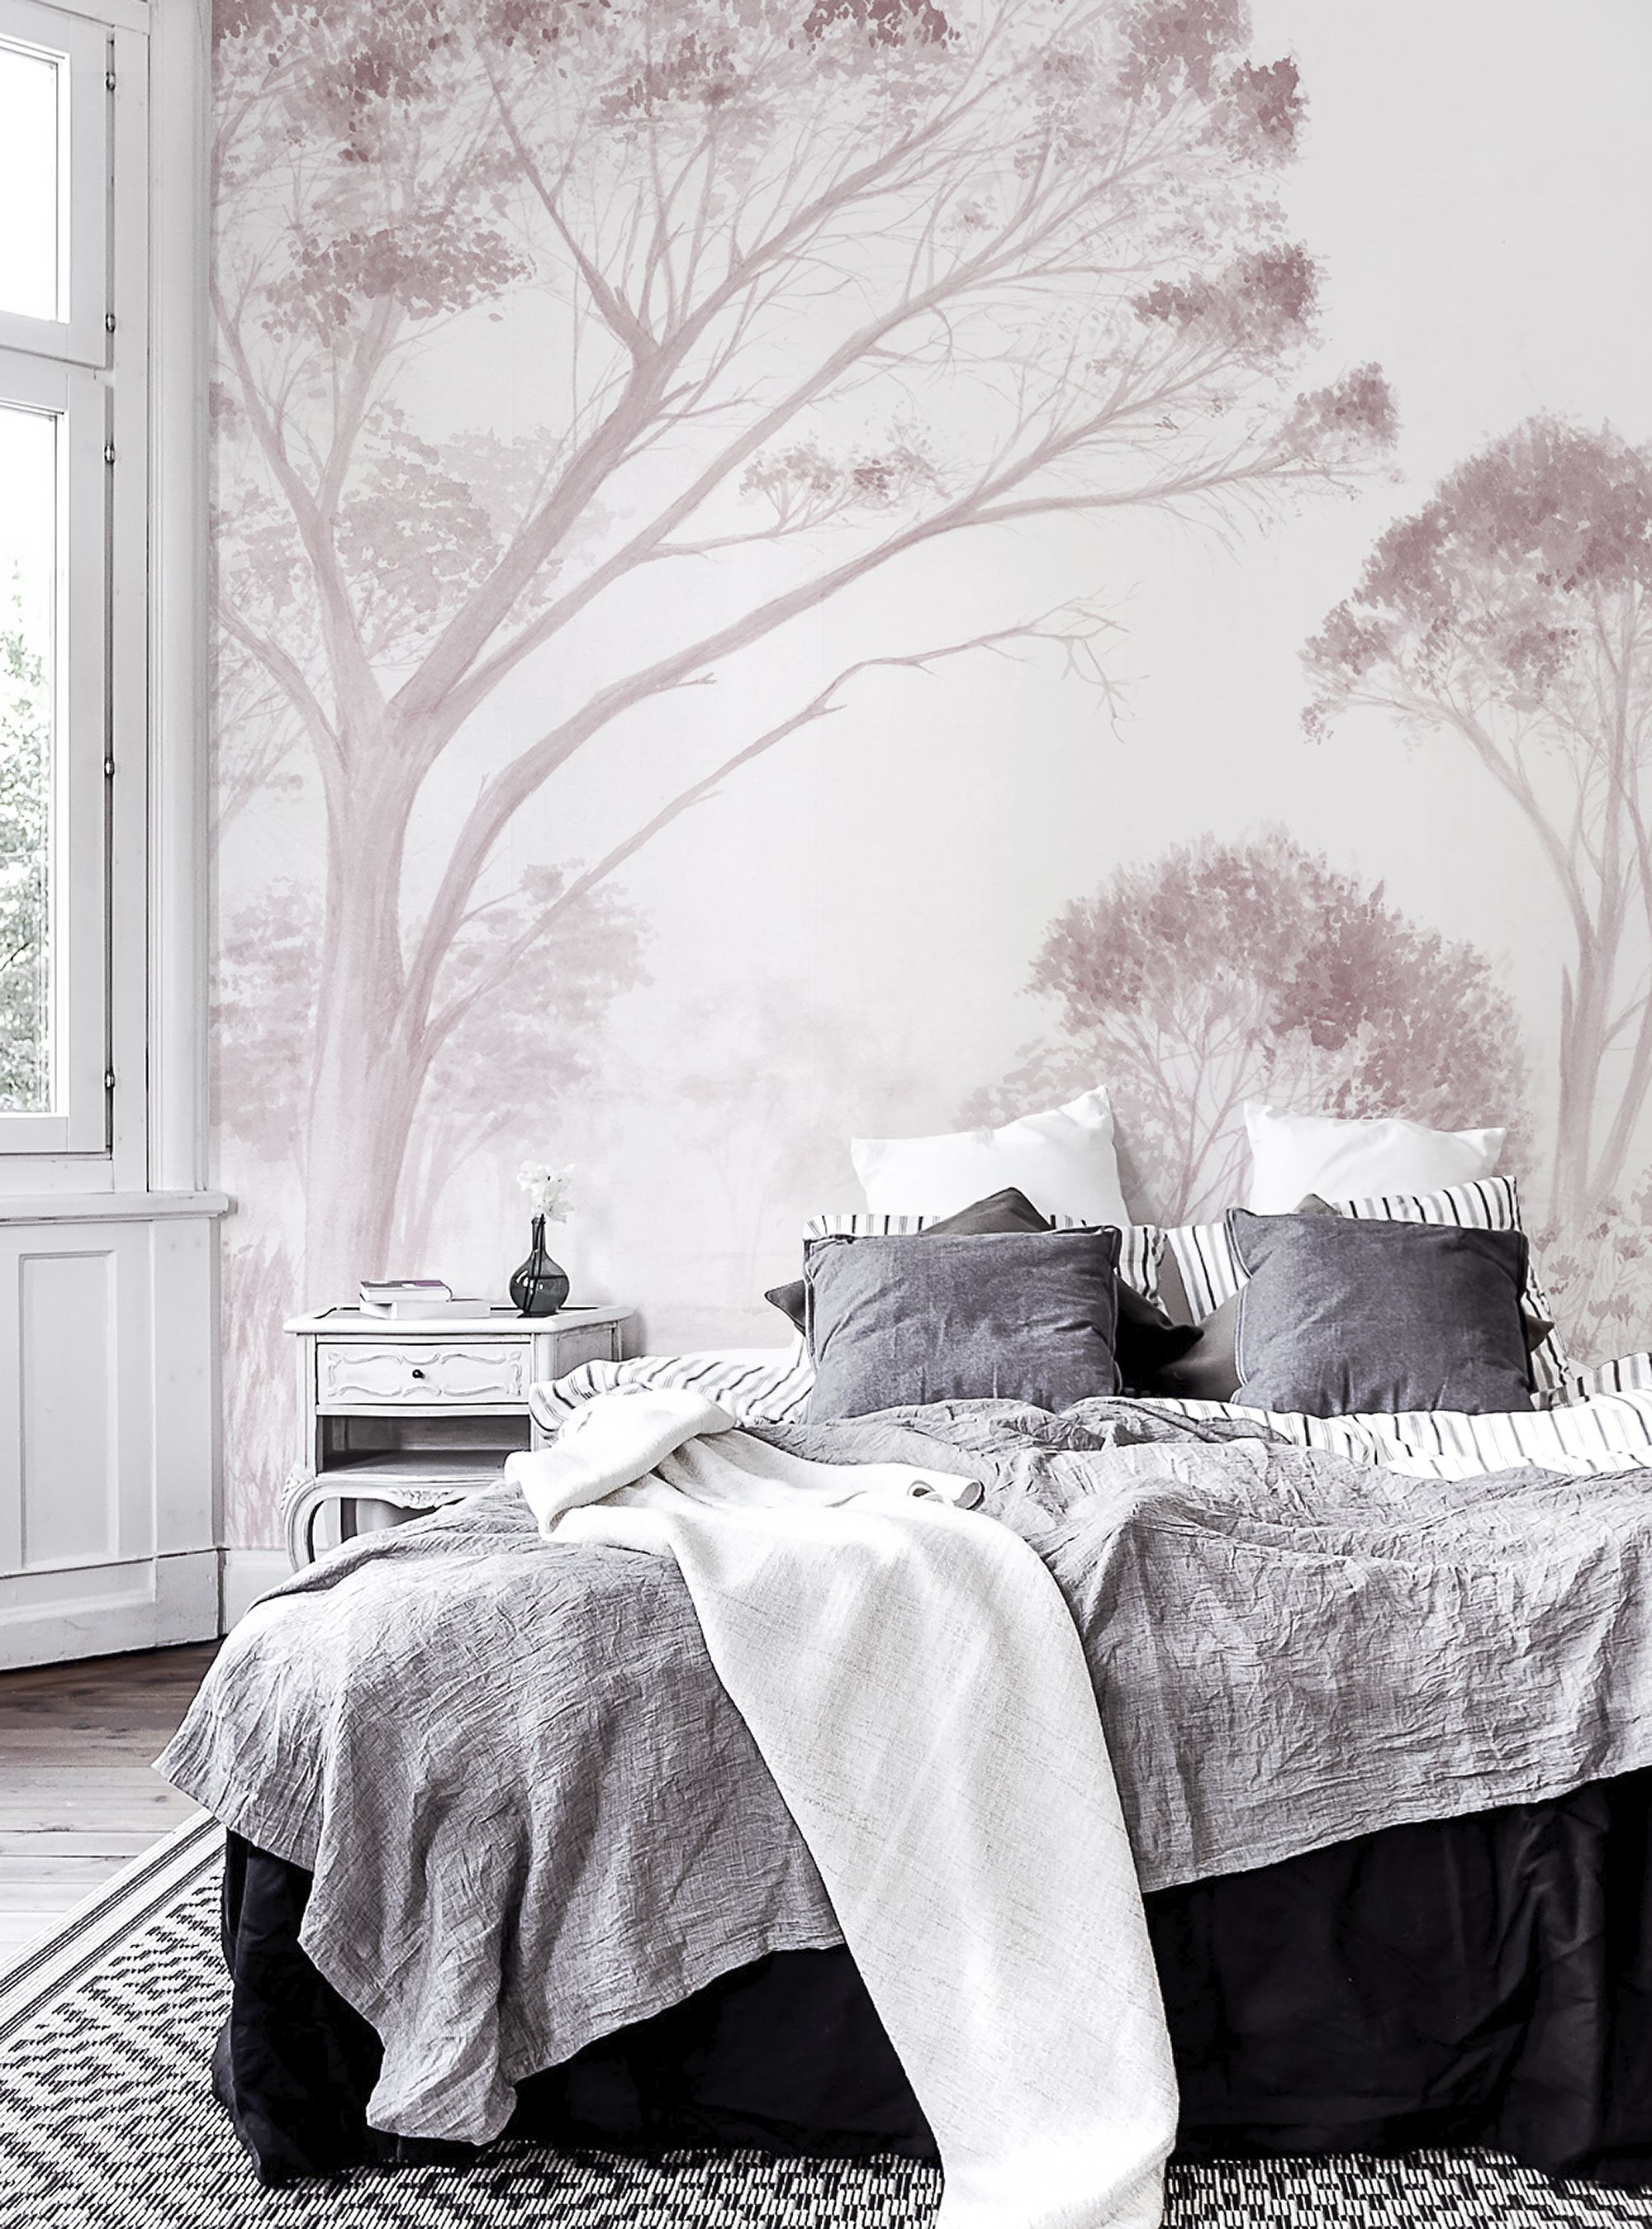 Beautiful Wallpaper For The Bedroom Trees Pink Explore More Design By Lemon At Photowall Com Wallpaper Wallmu Wall Murals Wallpaper Bedroom Bedroom Design